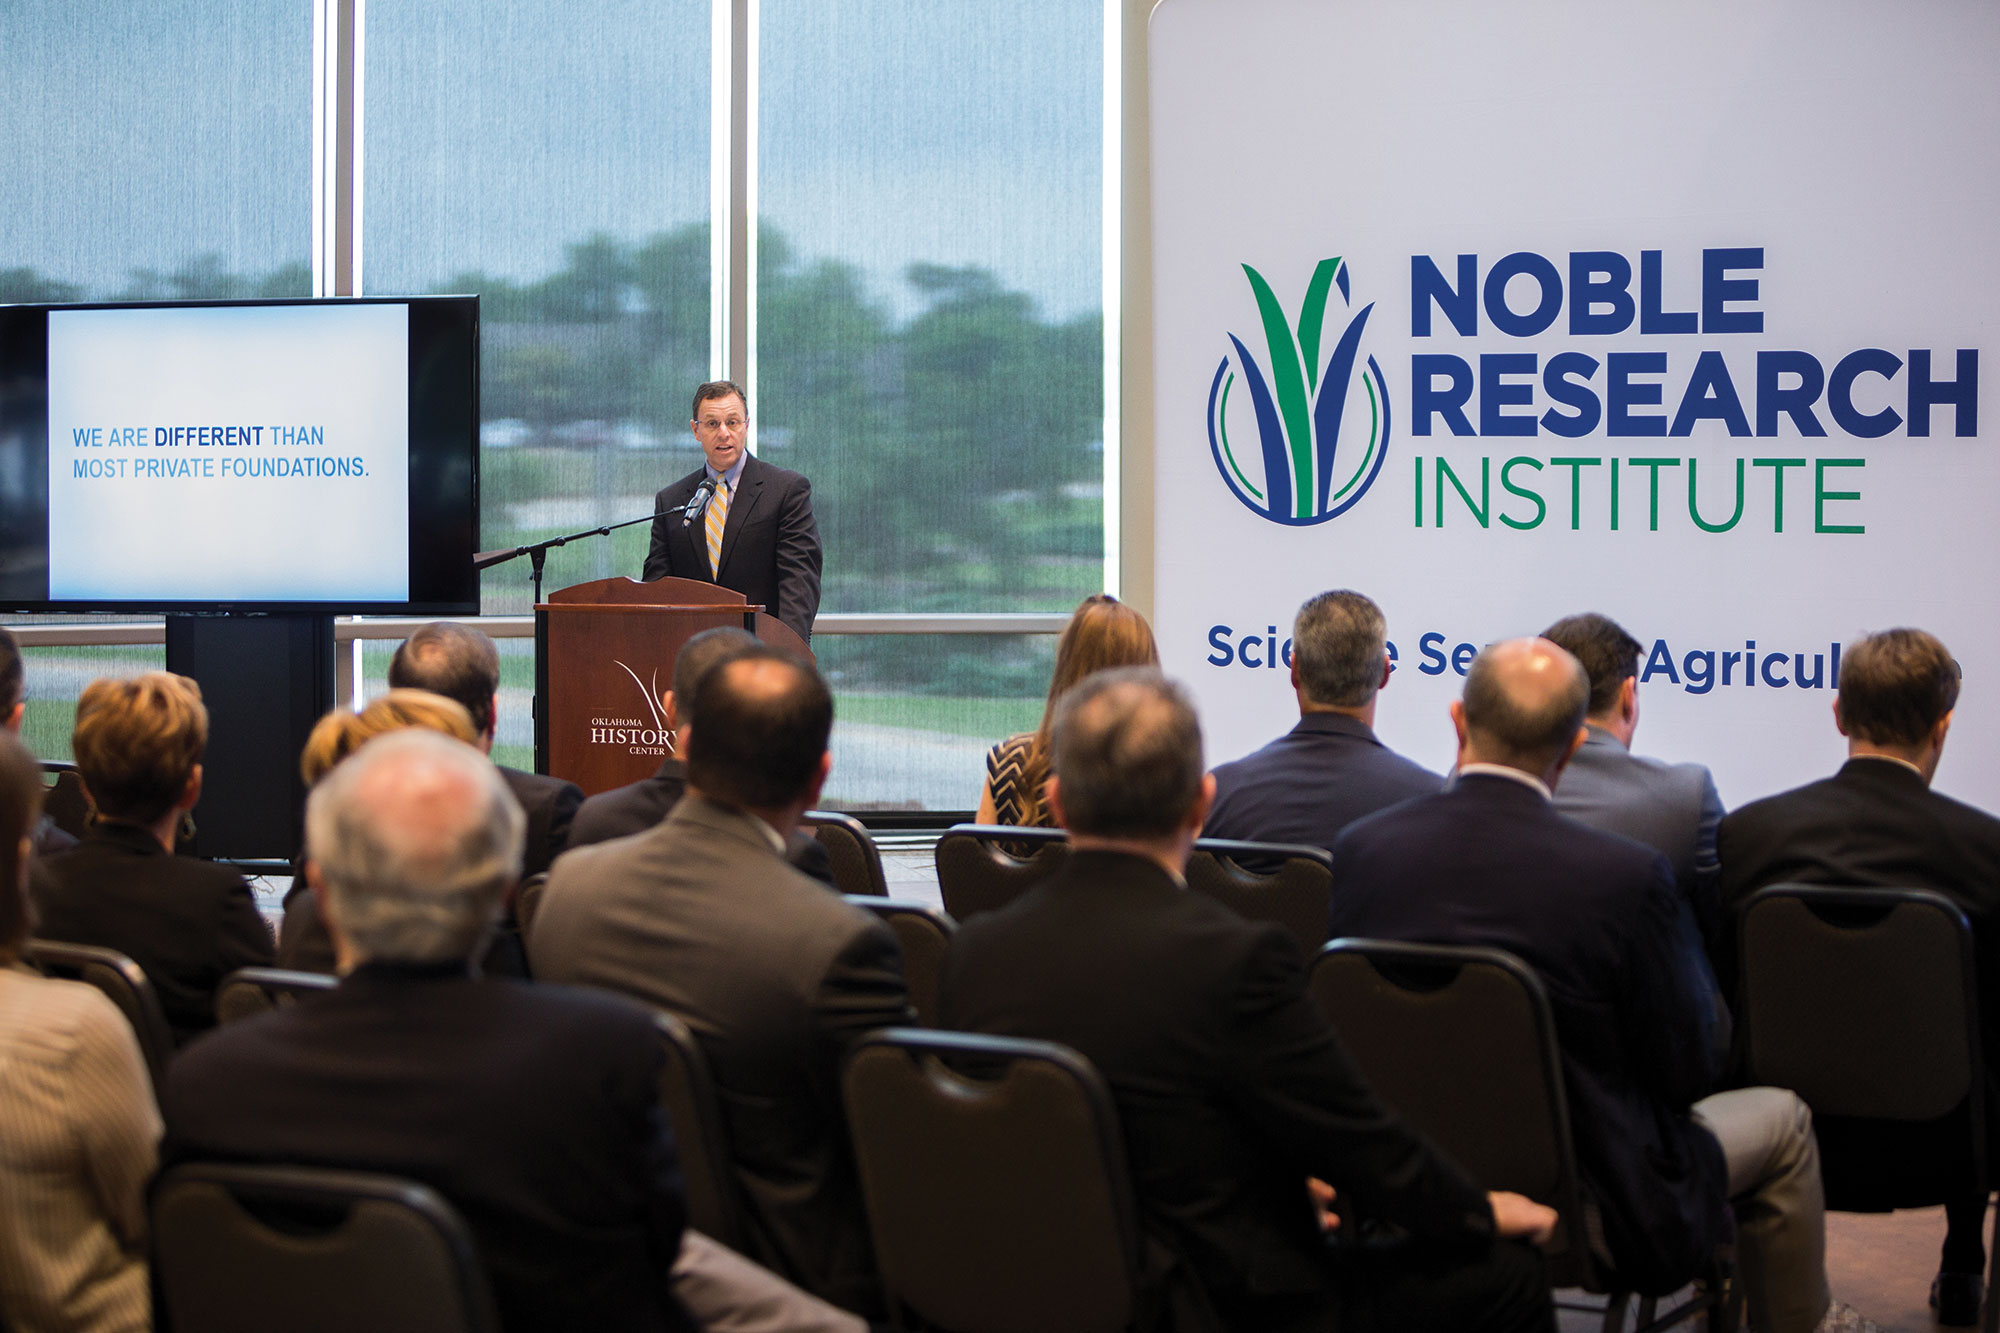 Steve Rhines explains how a public charity more closely aligns with the operations of the Noble Research Institute.